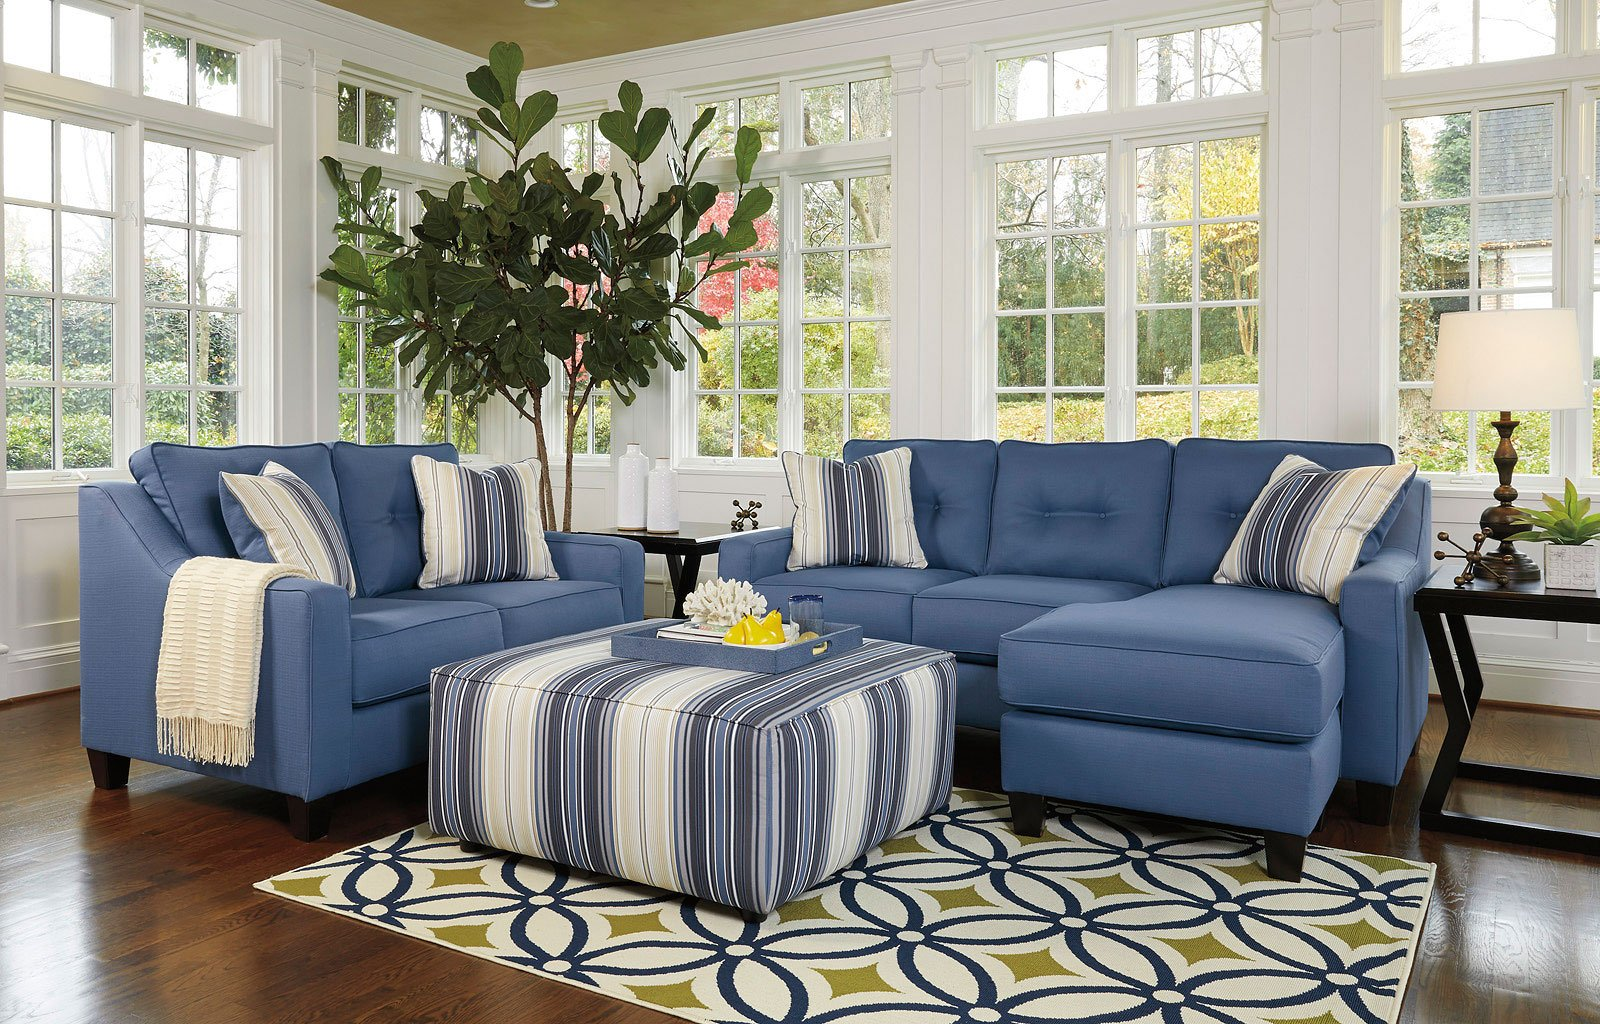 Beau Aldie Nuvella Blue Living Room Set